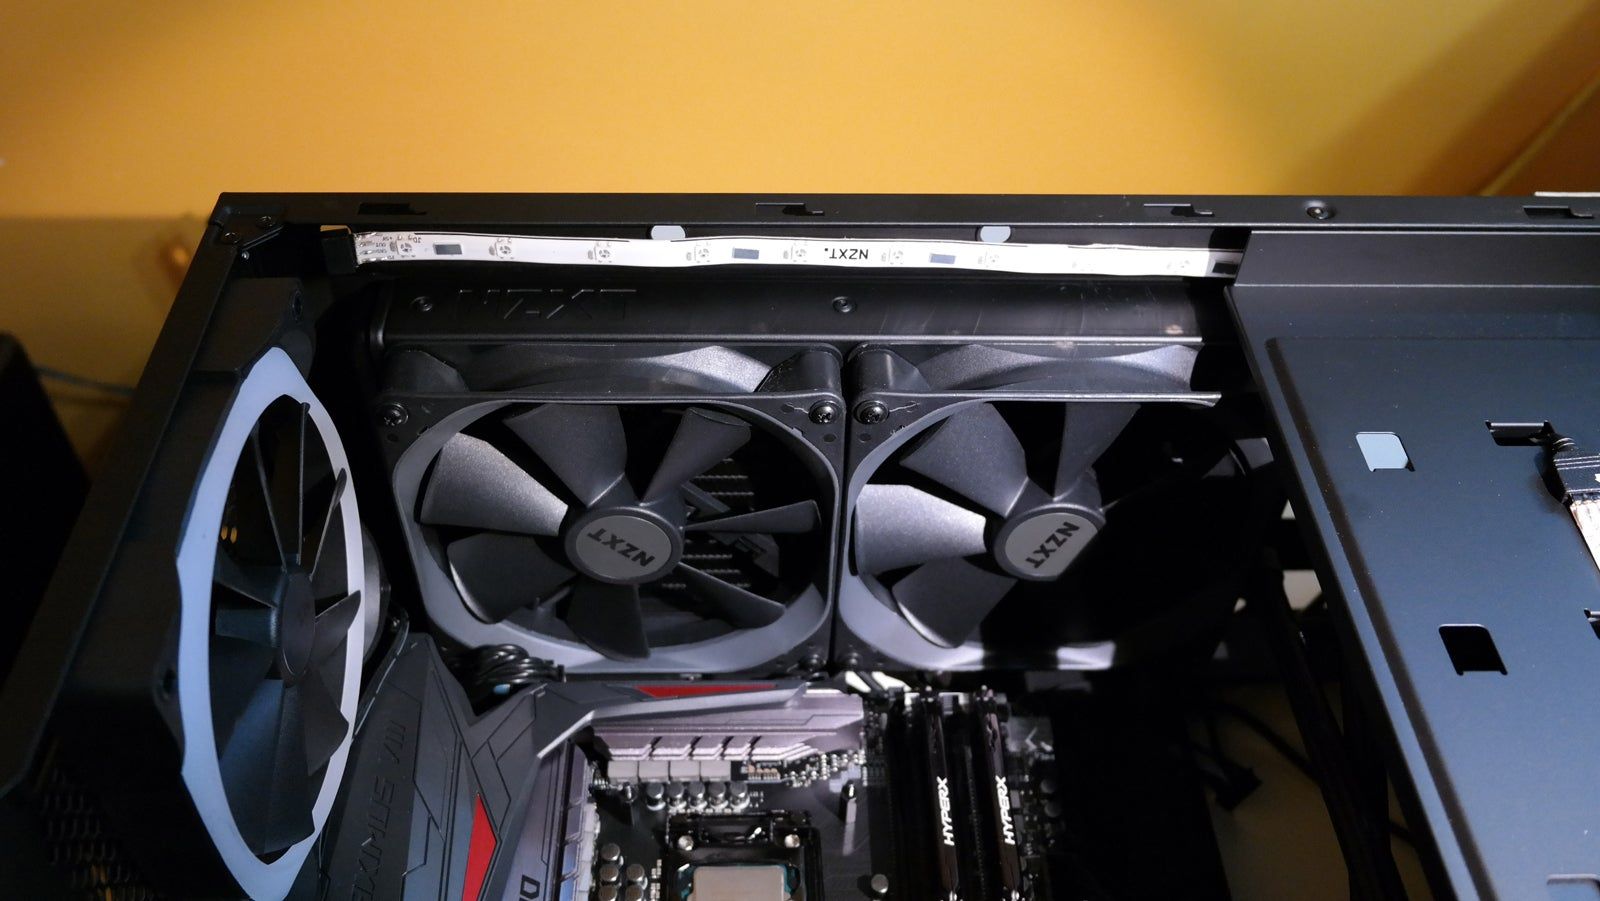 How to buy and install a closed-loop CPU liquid cooler for